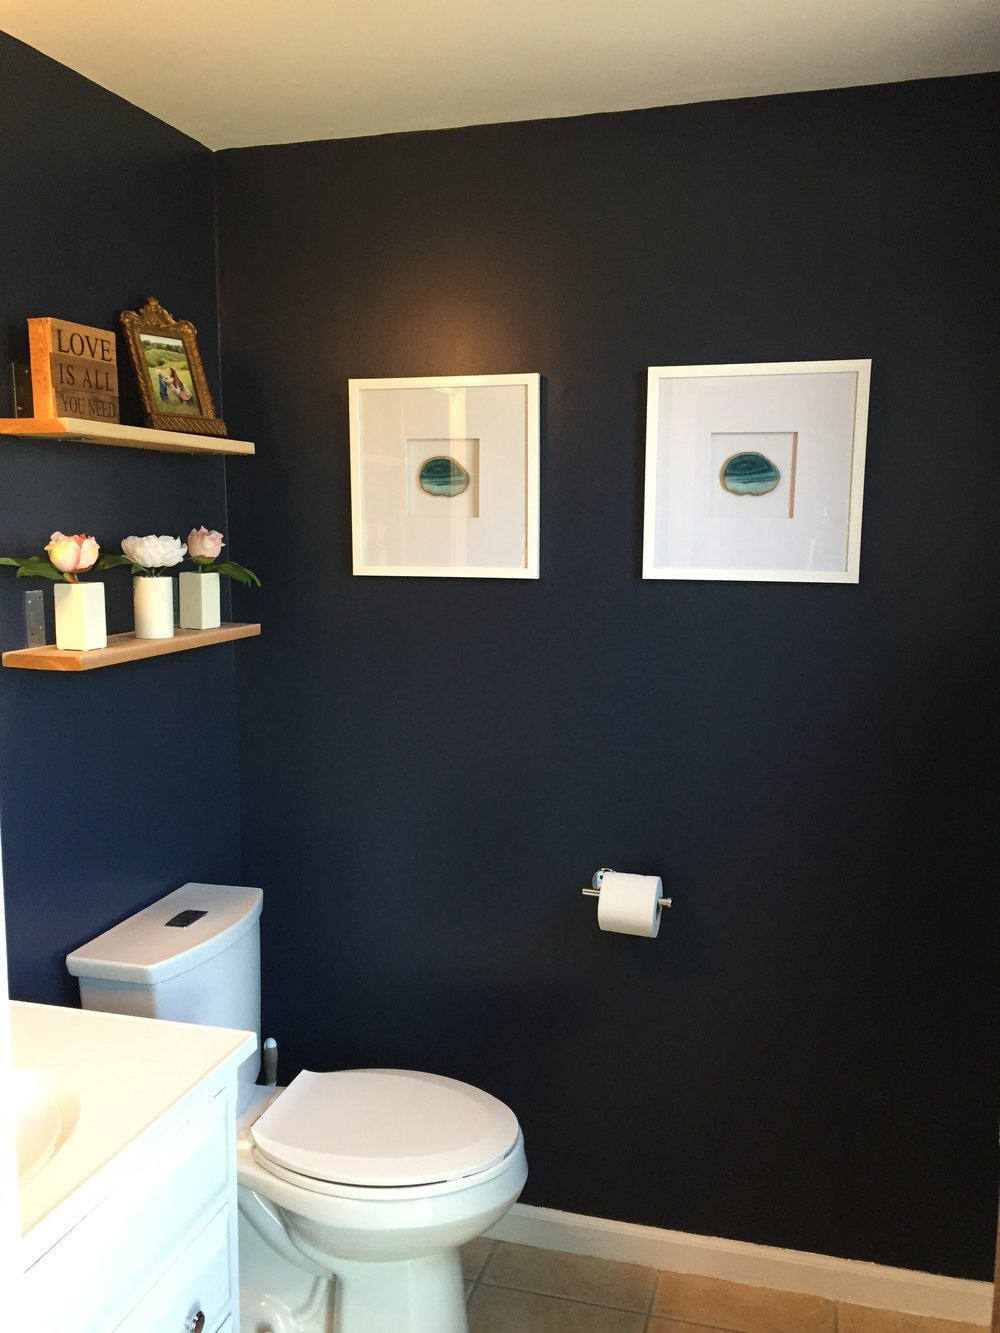 Hale Navy walls give a dramatic look to the half bathroom.